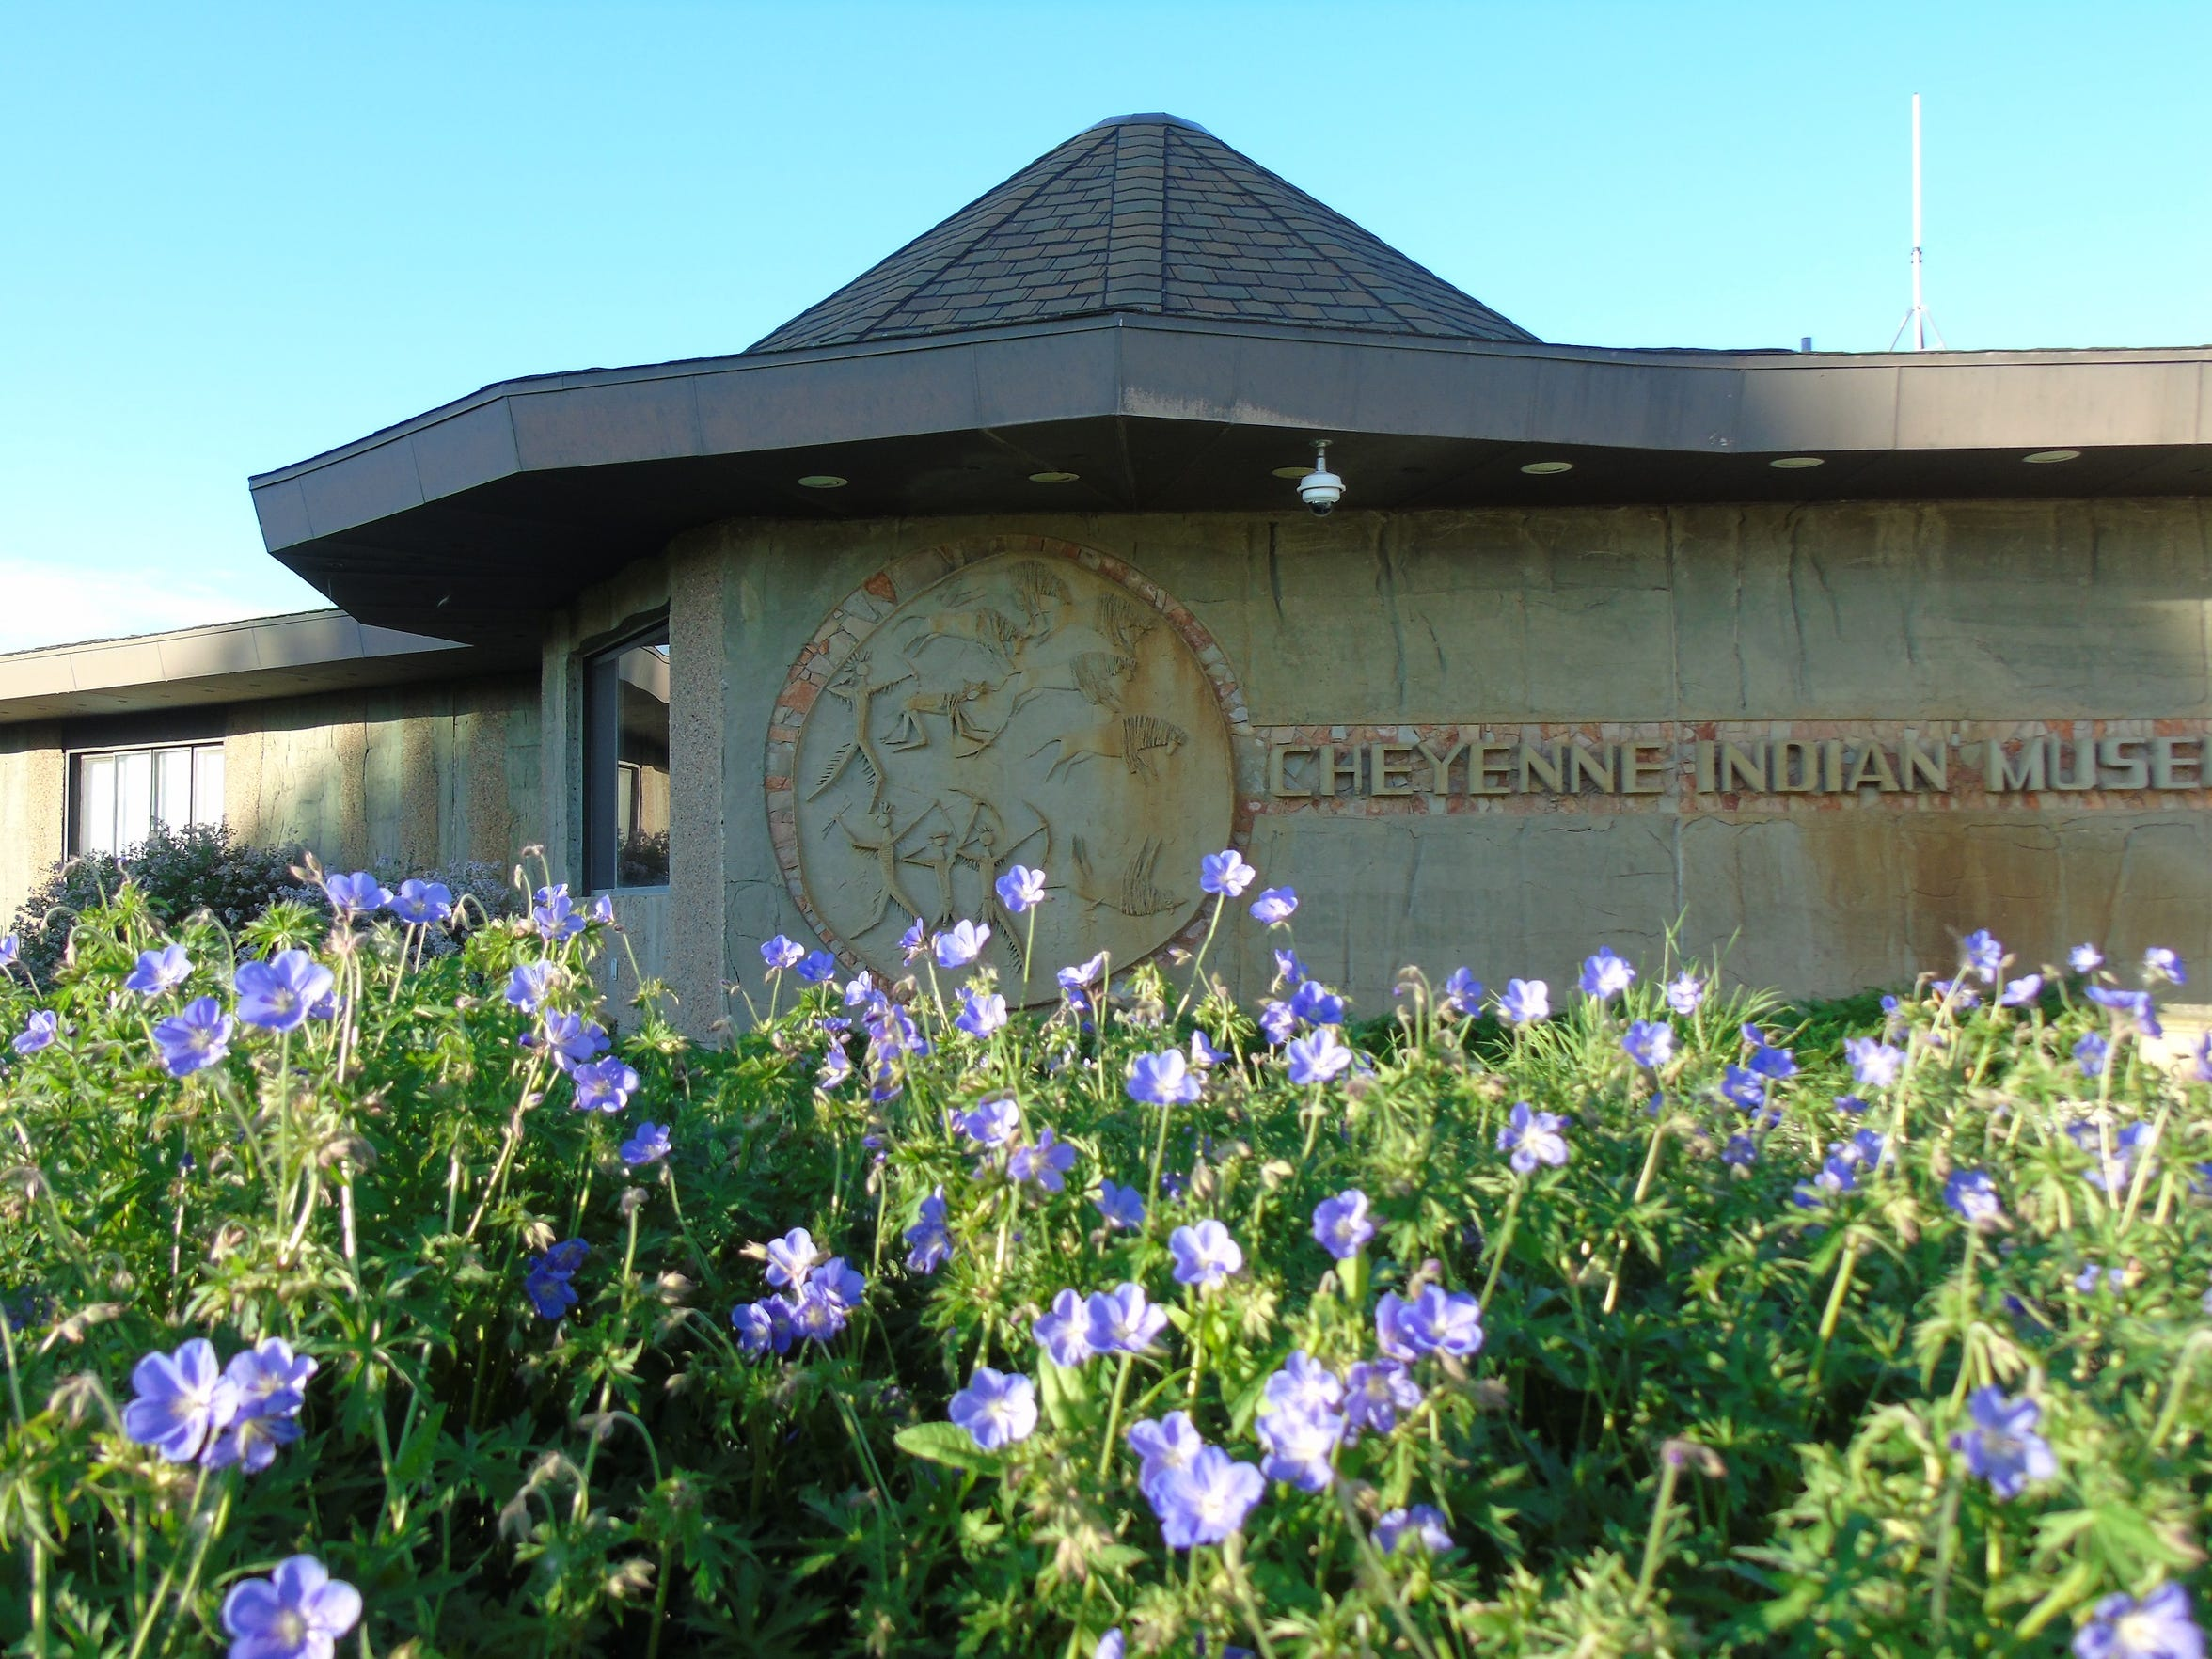 The St. Labre Indian School hosts the Cheyenne Indian Museum in Ashland on the Northern Cheyenne Indian Reservation.